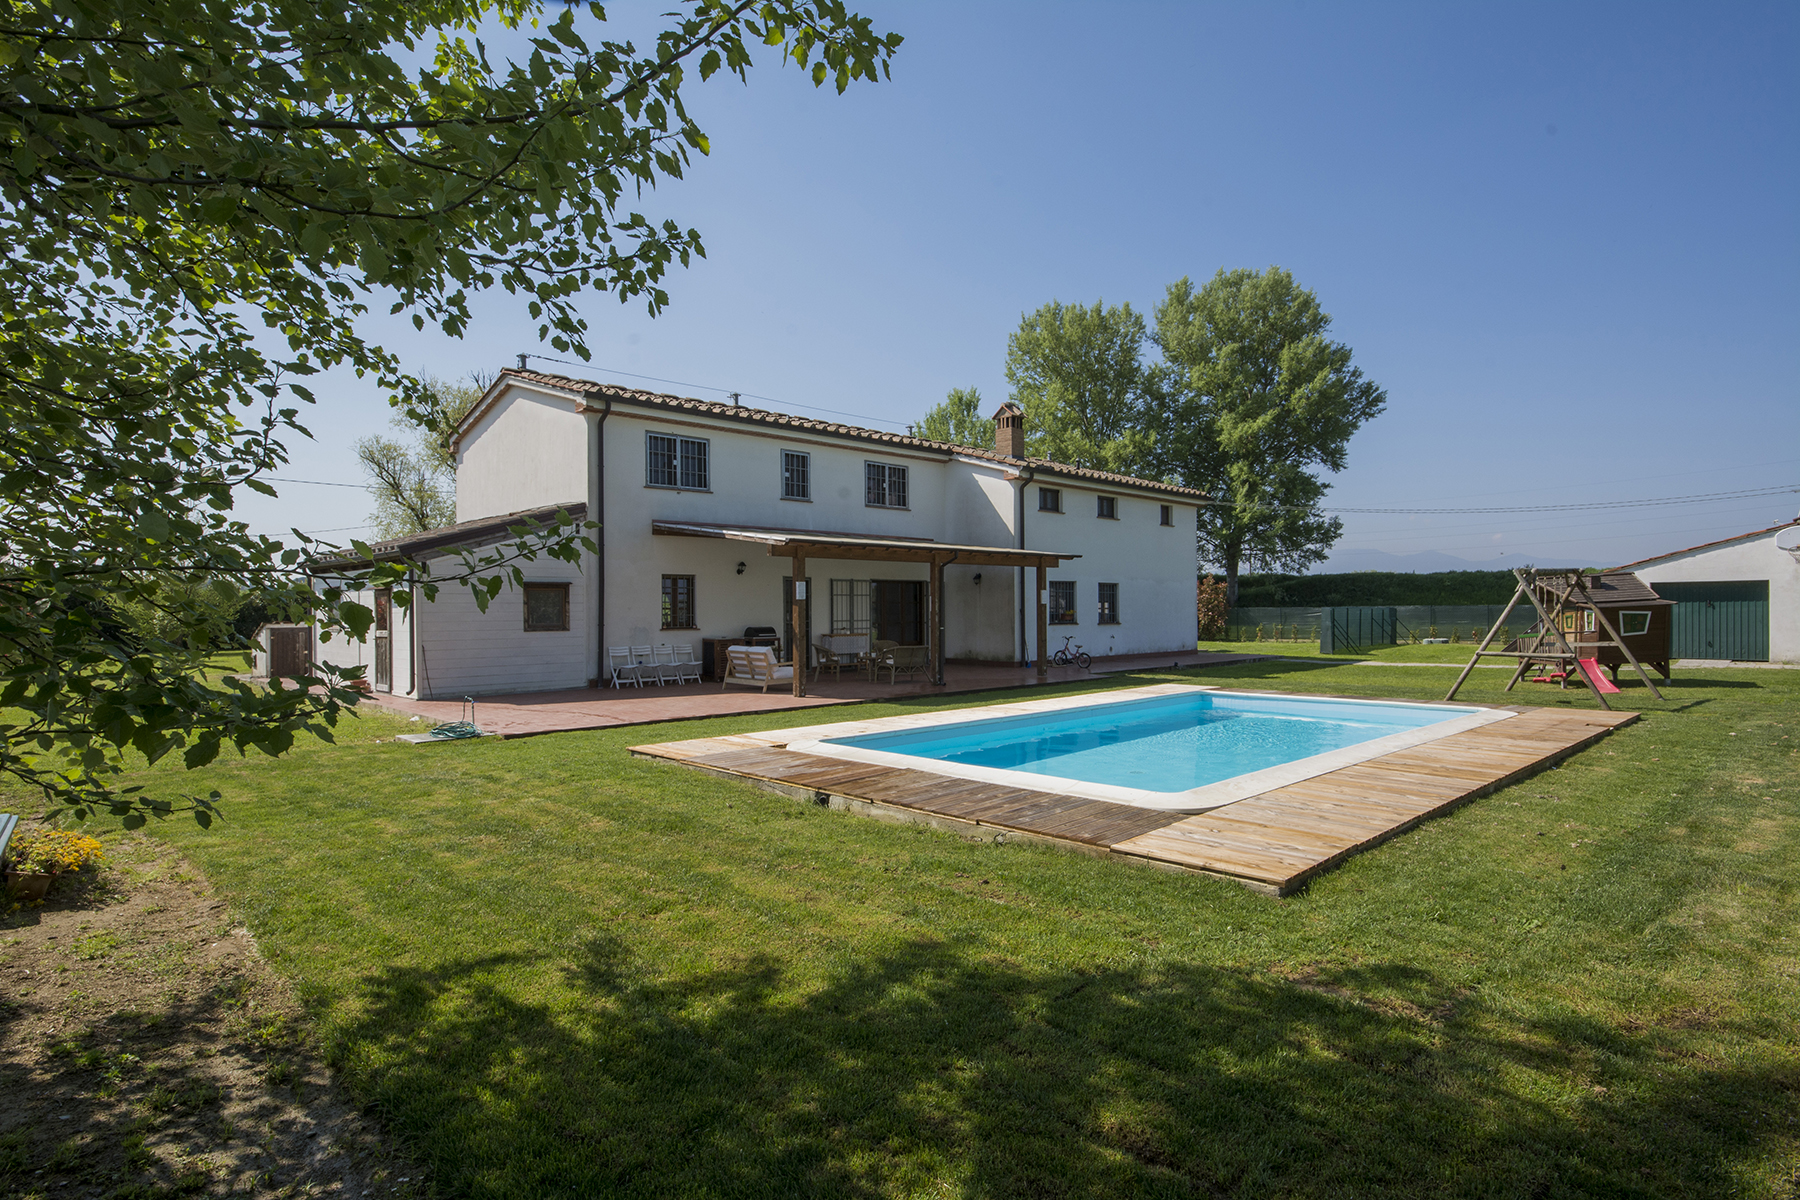 Single Family Home for Sale at Independent farmhouse with swimming pool Other Pistoia, Pistoia Italy